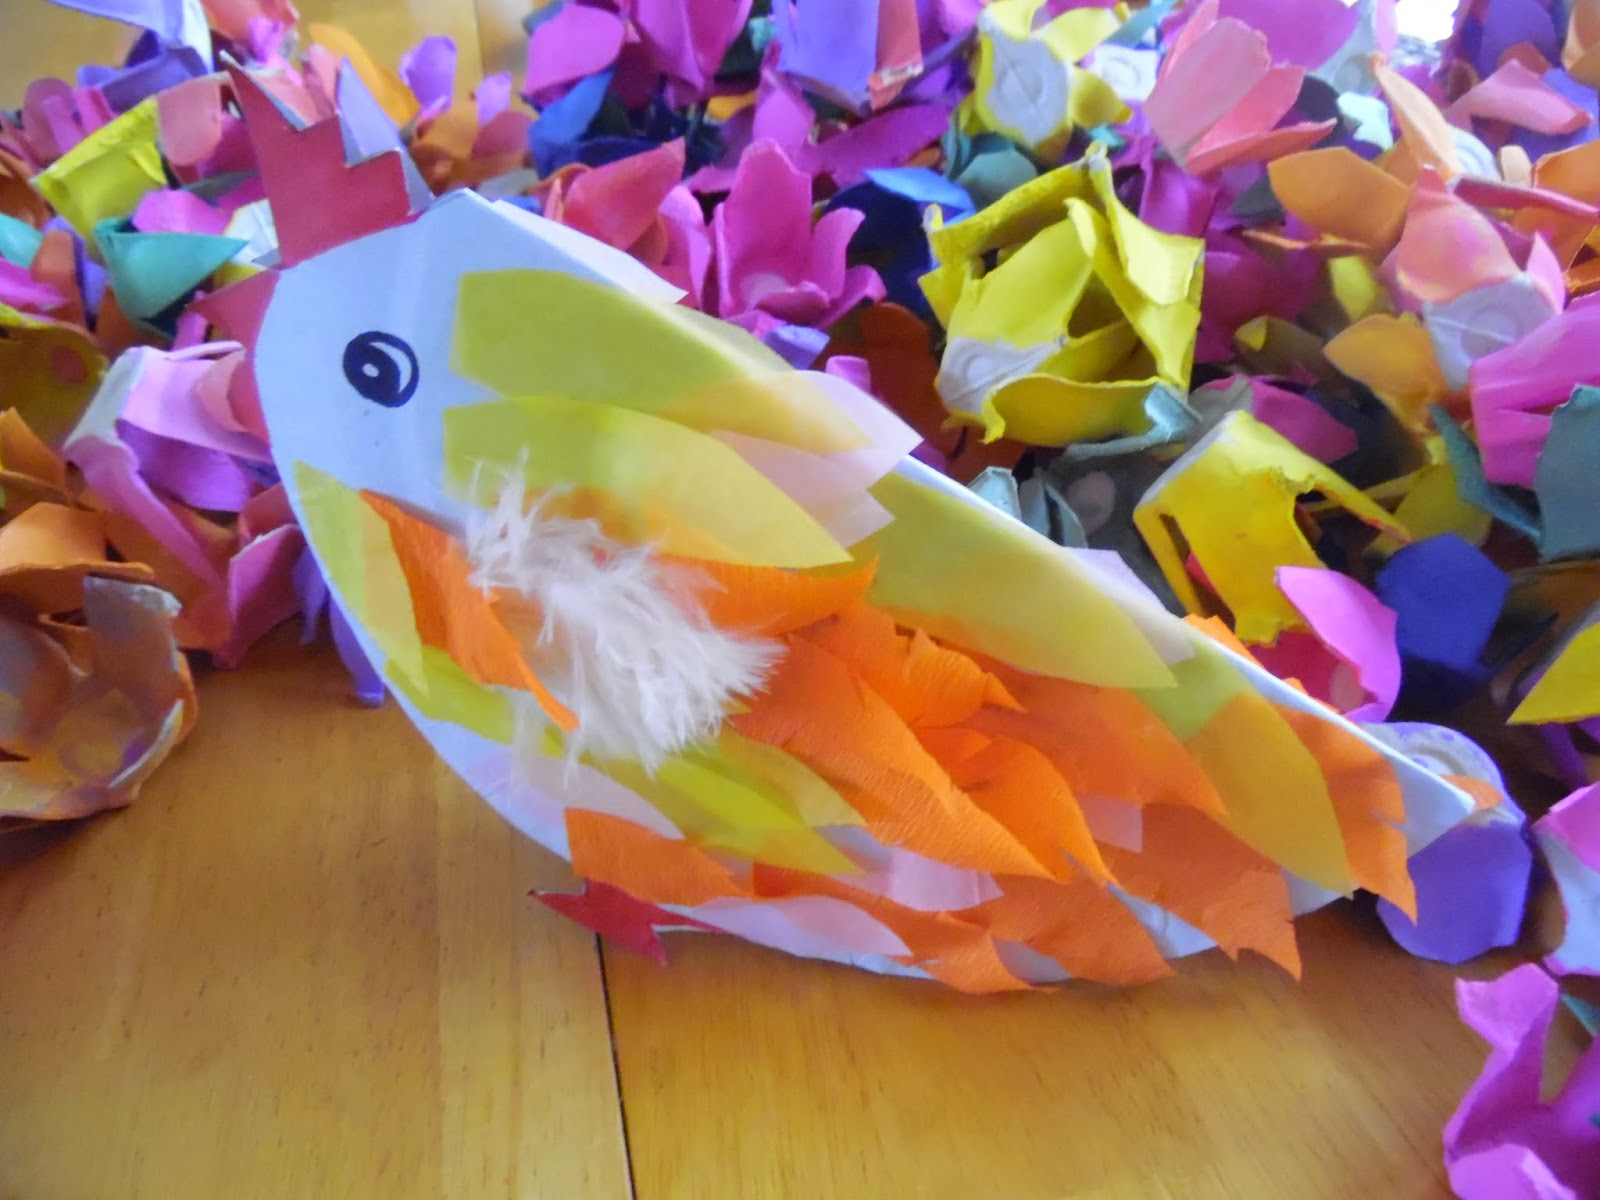 The chicken is a paper plate that has been flded in half and trimmed to make the feet beak and comb. The feathers are a mixture of feathers ... & Makedoandlearn!: Easter chicken - paper plate craft/DIY